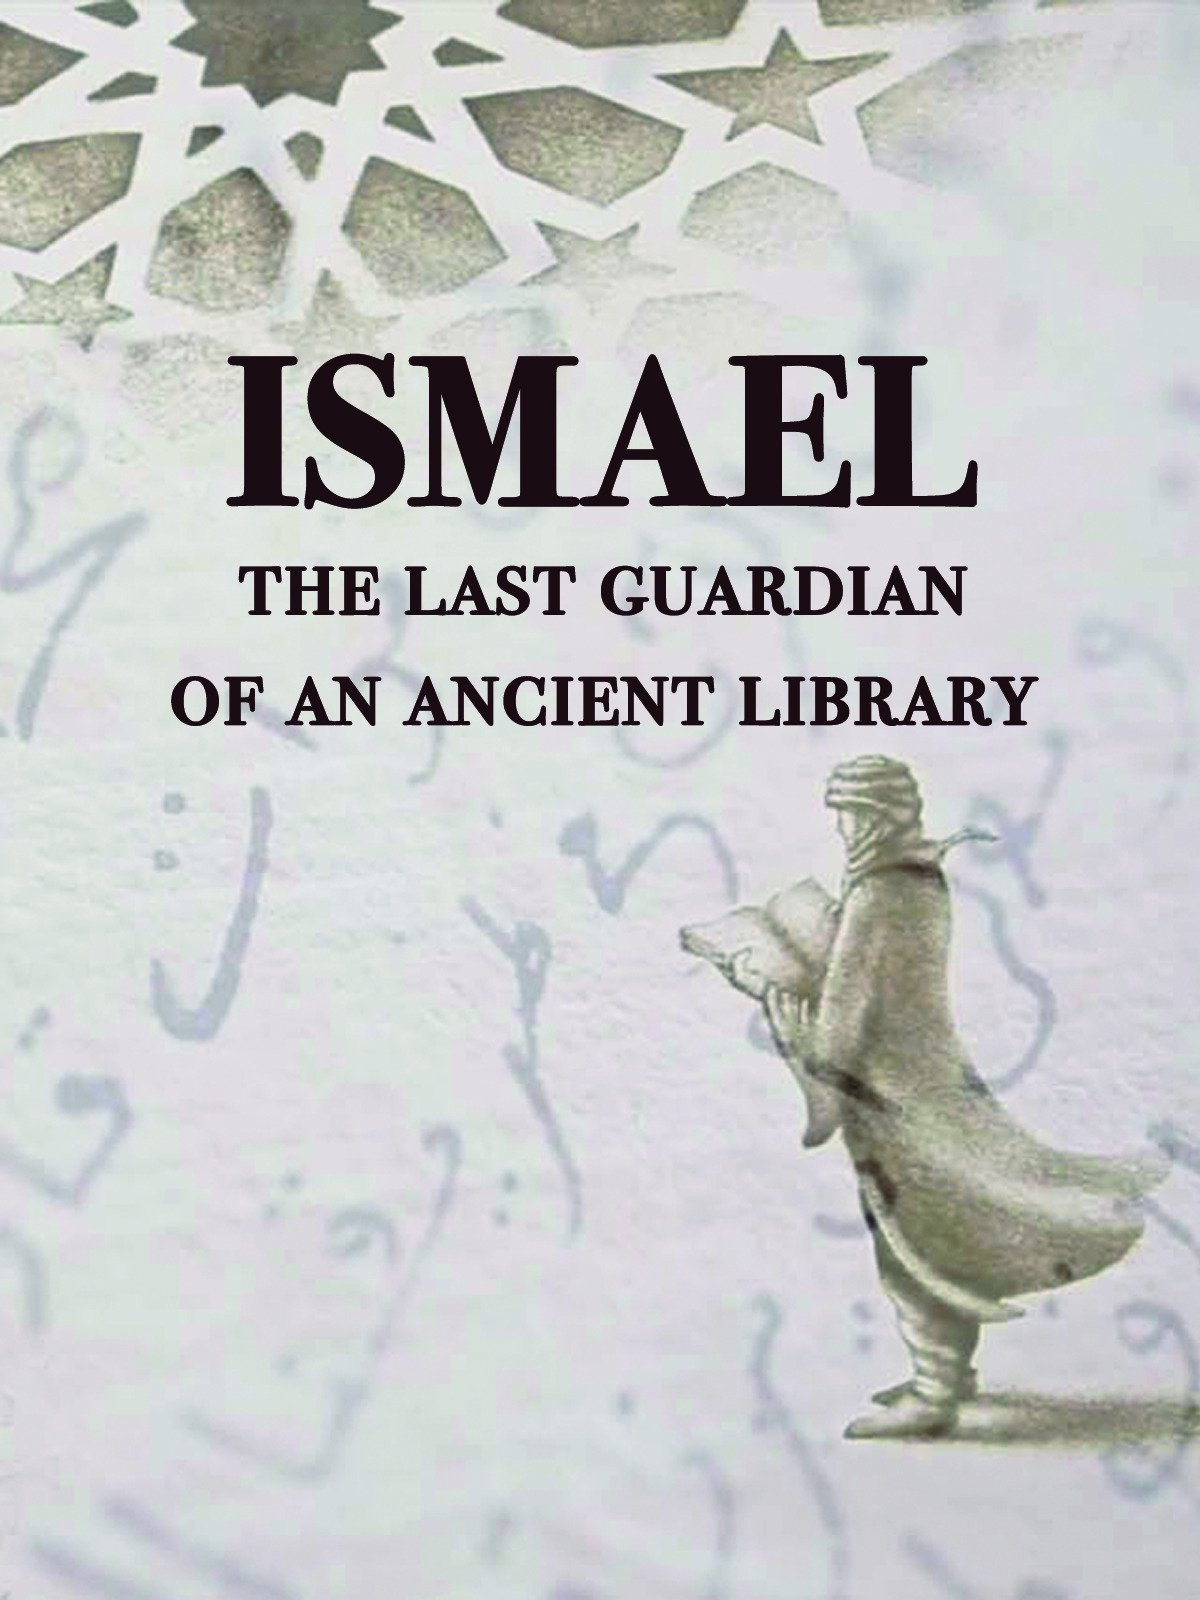 ismael poster